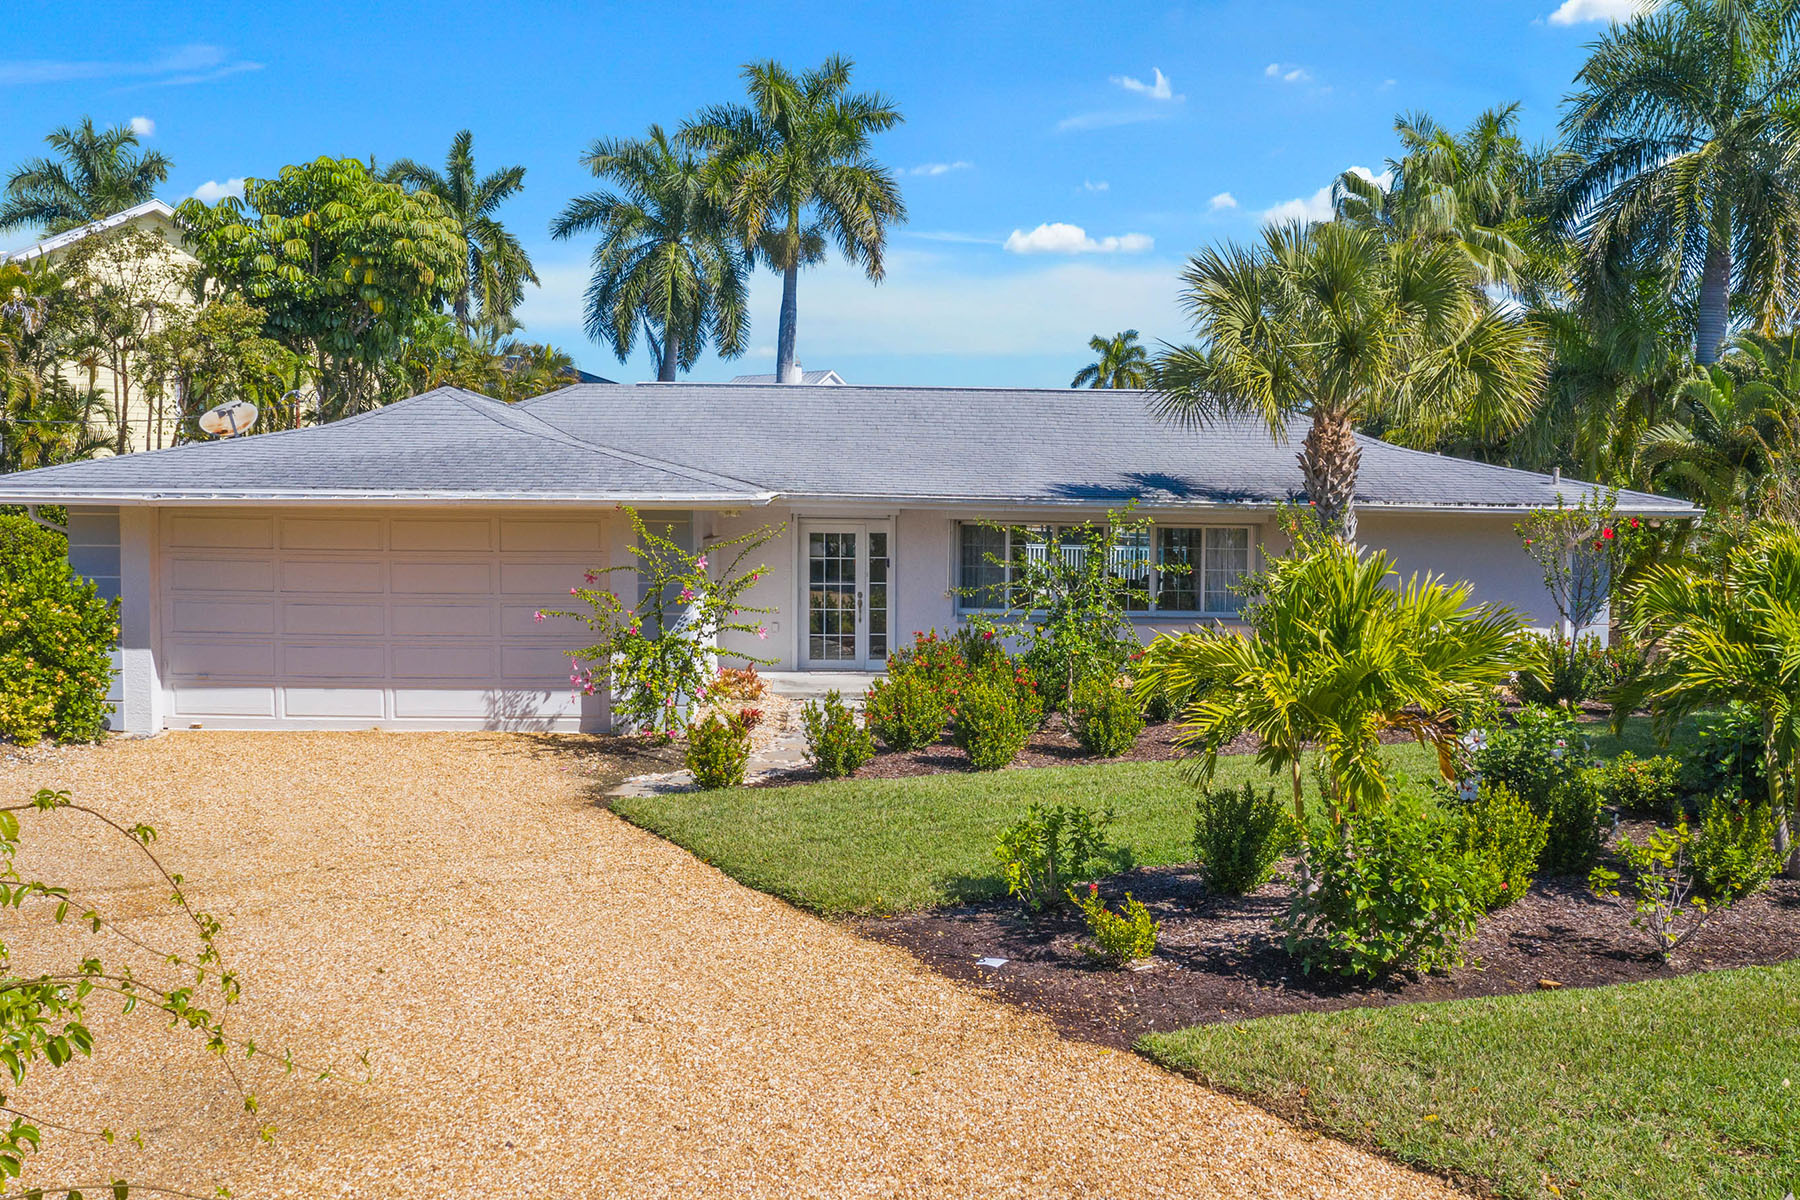 Single Family Homes for Sale at WATER SHADOWS 1560 Royal Poinciana Drive, Sanibel, Florida 33957 United States